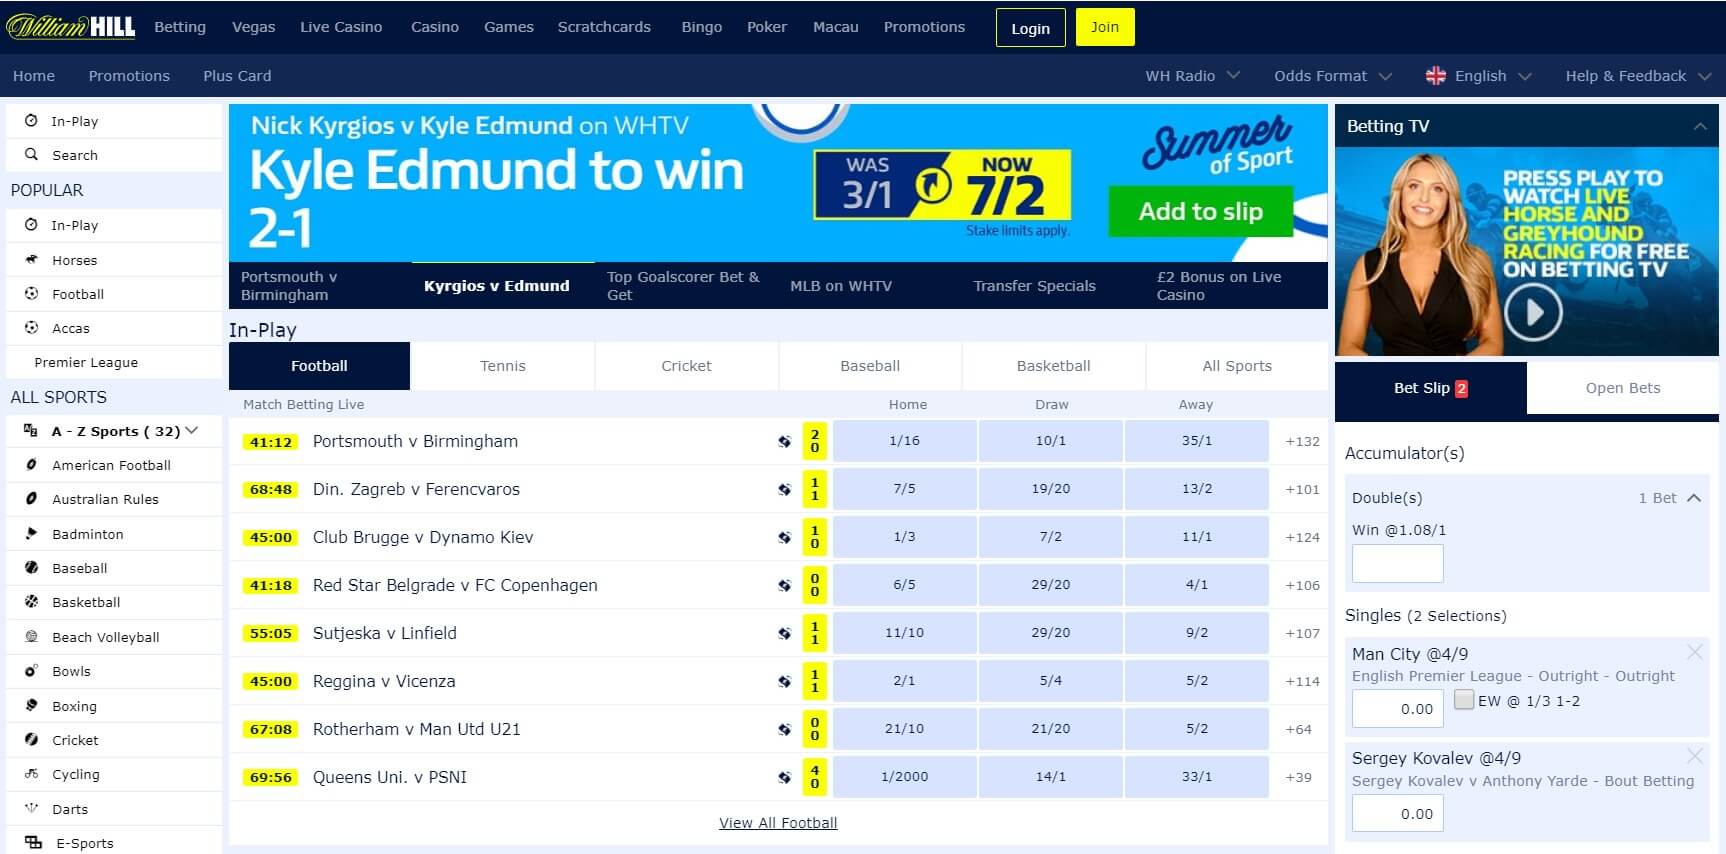 William Hill Sports offer